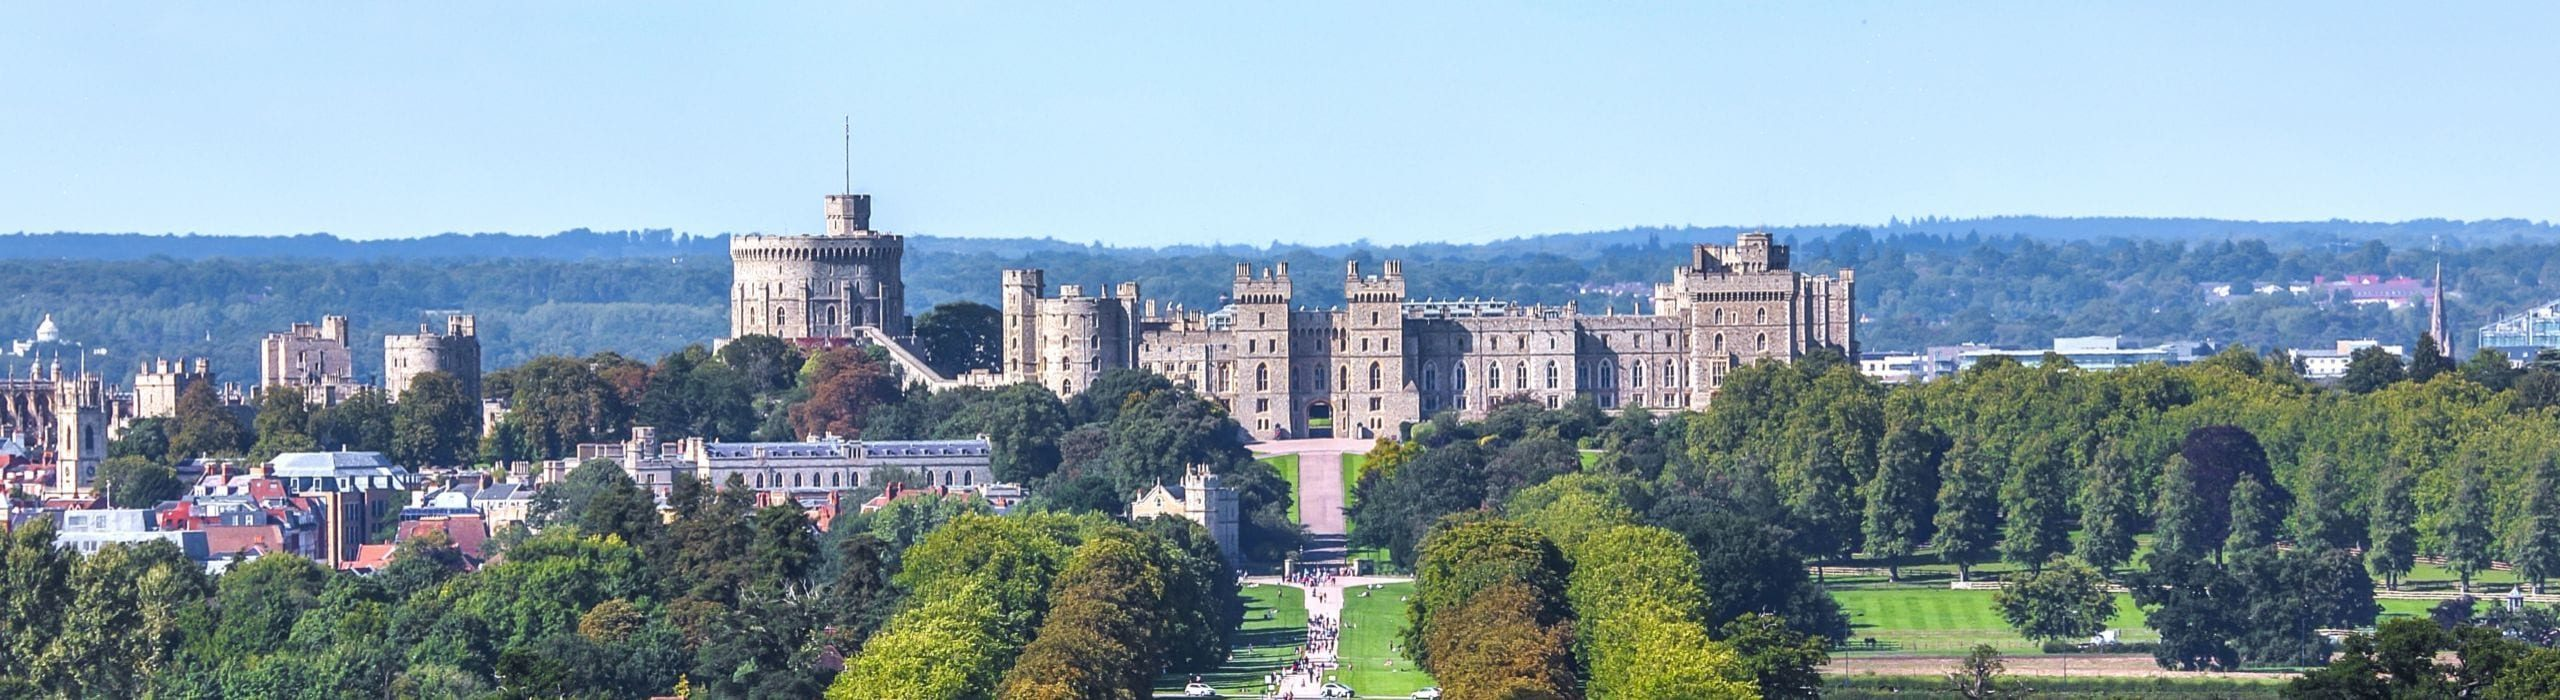 windsor-castle-2755009-horizon